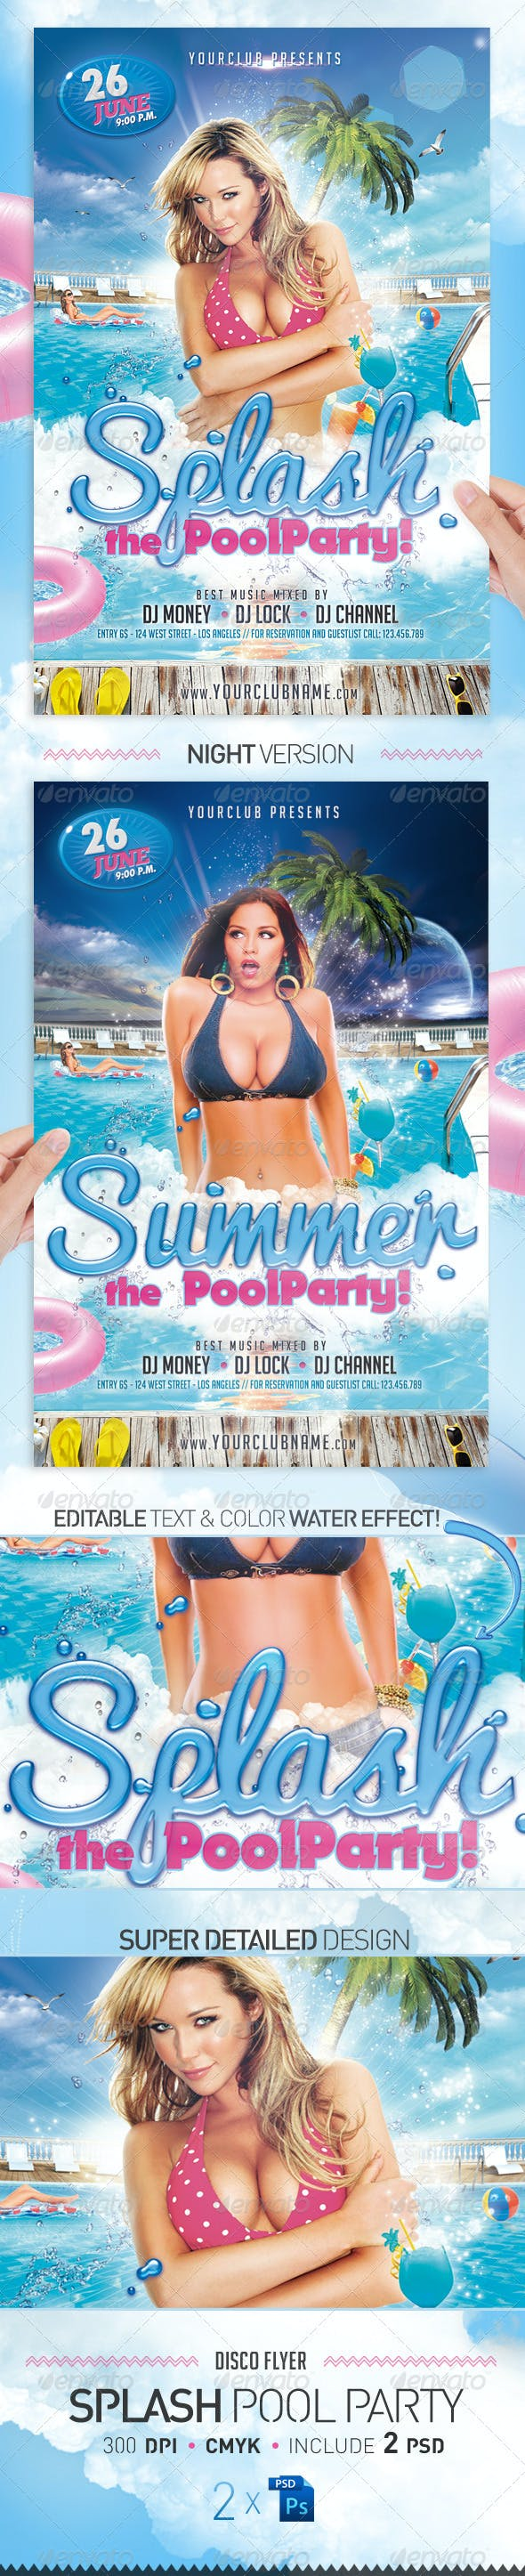 splash pool party flyer template by jellygraphics graphicriver